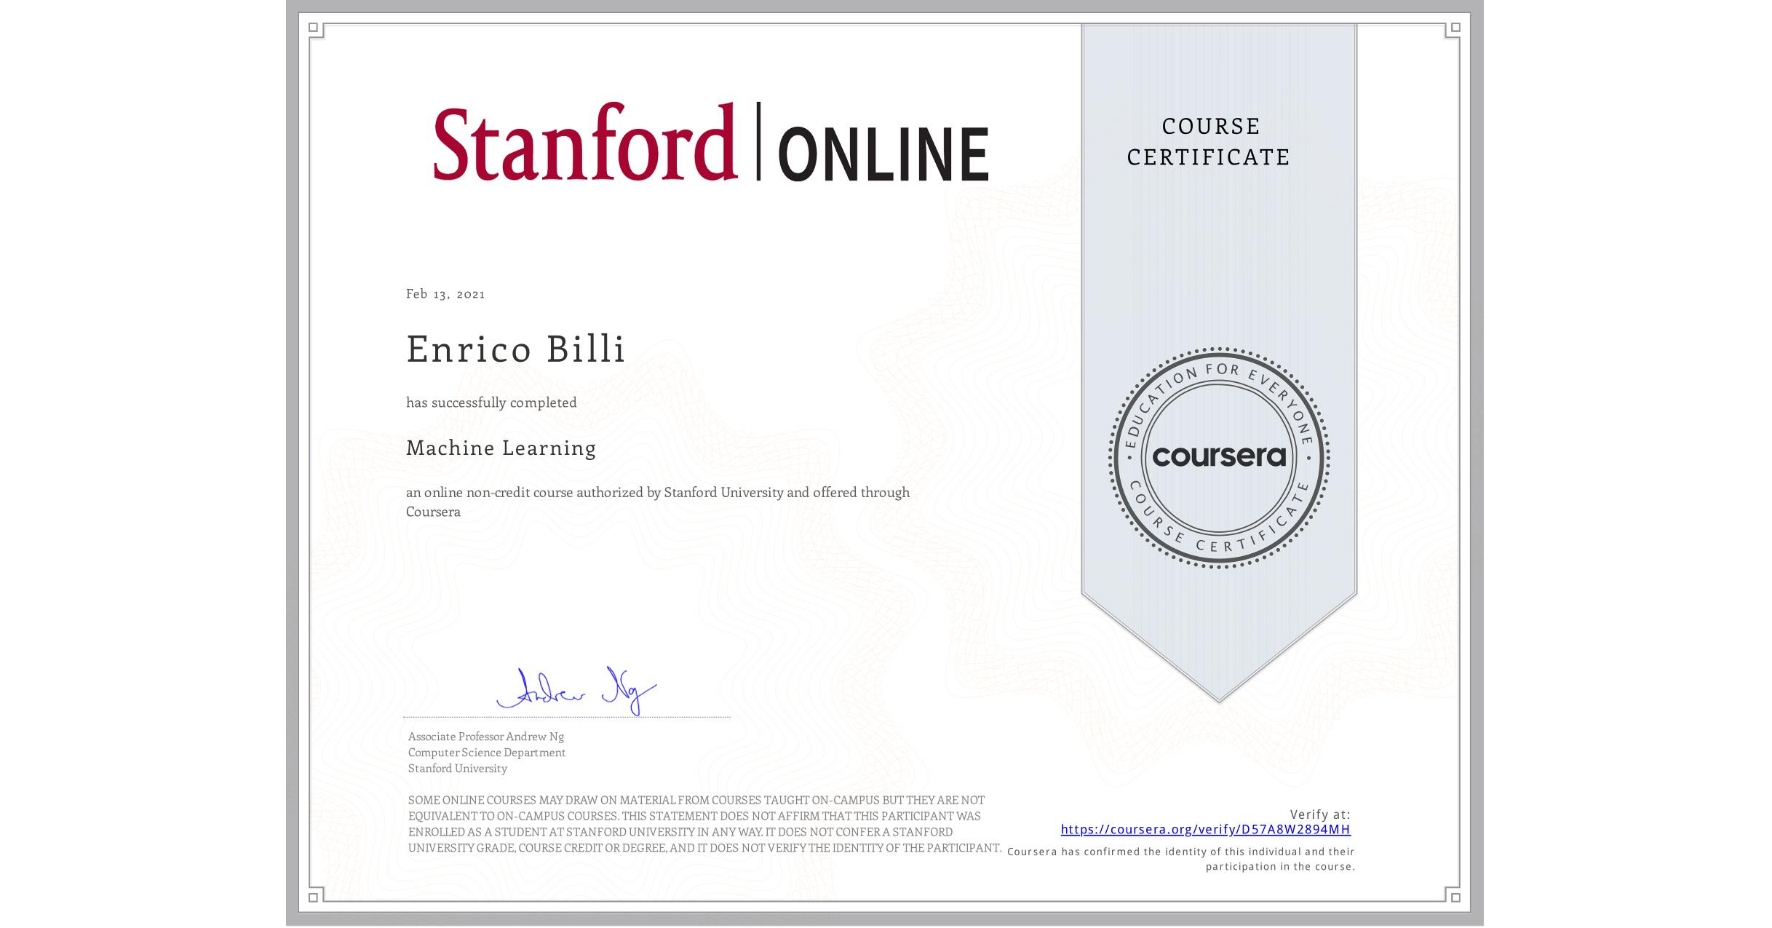 View certificate for Enrico Billi, Machine Learning, an online non-credit course authorized by Stanford University and offered through Coursera